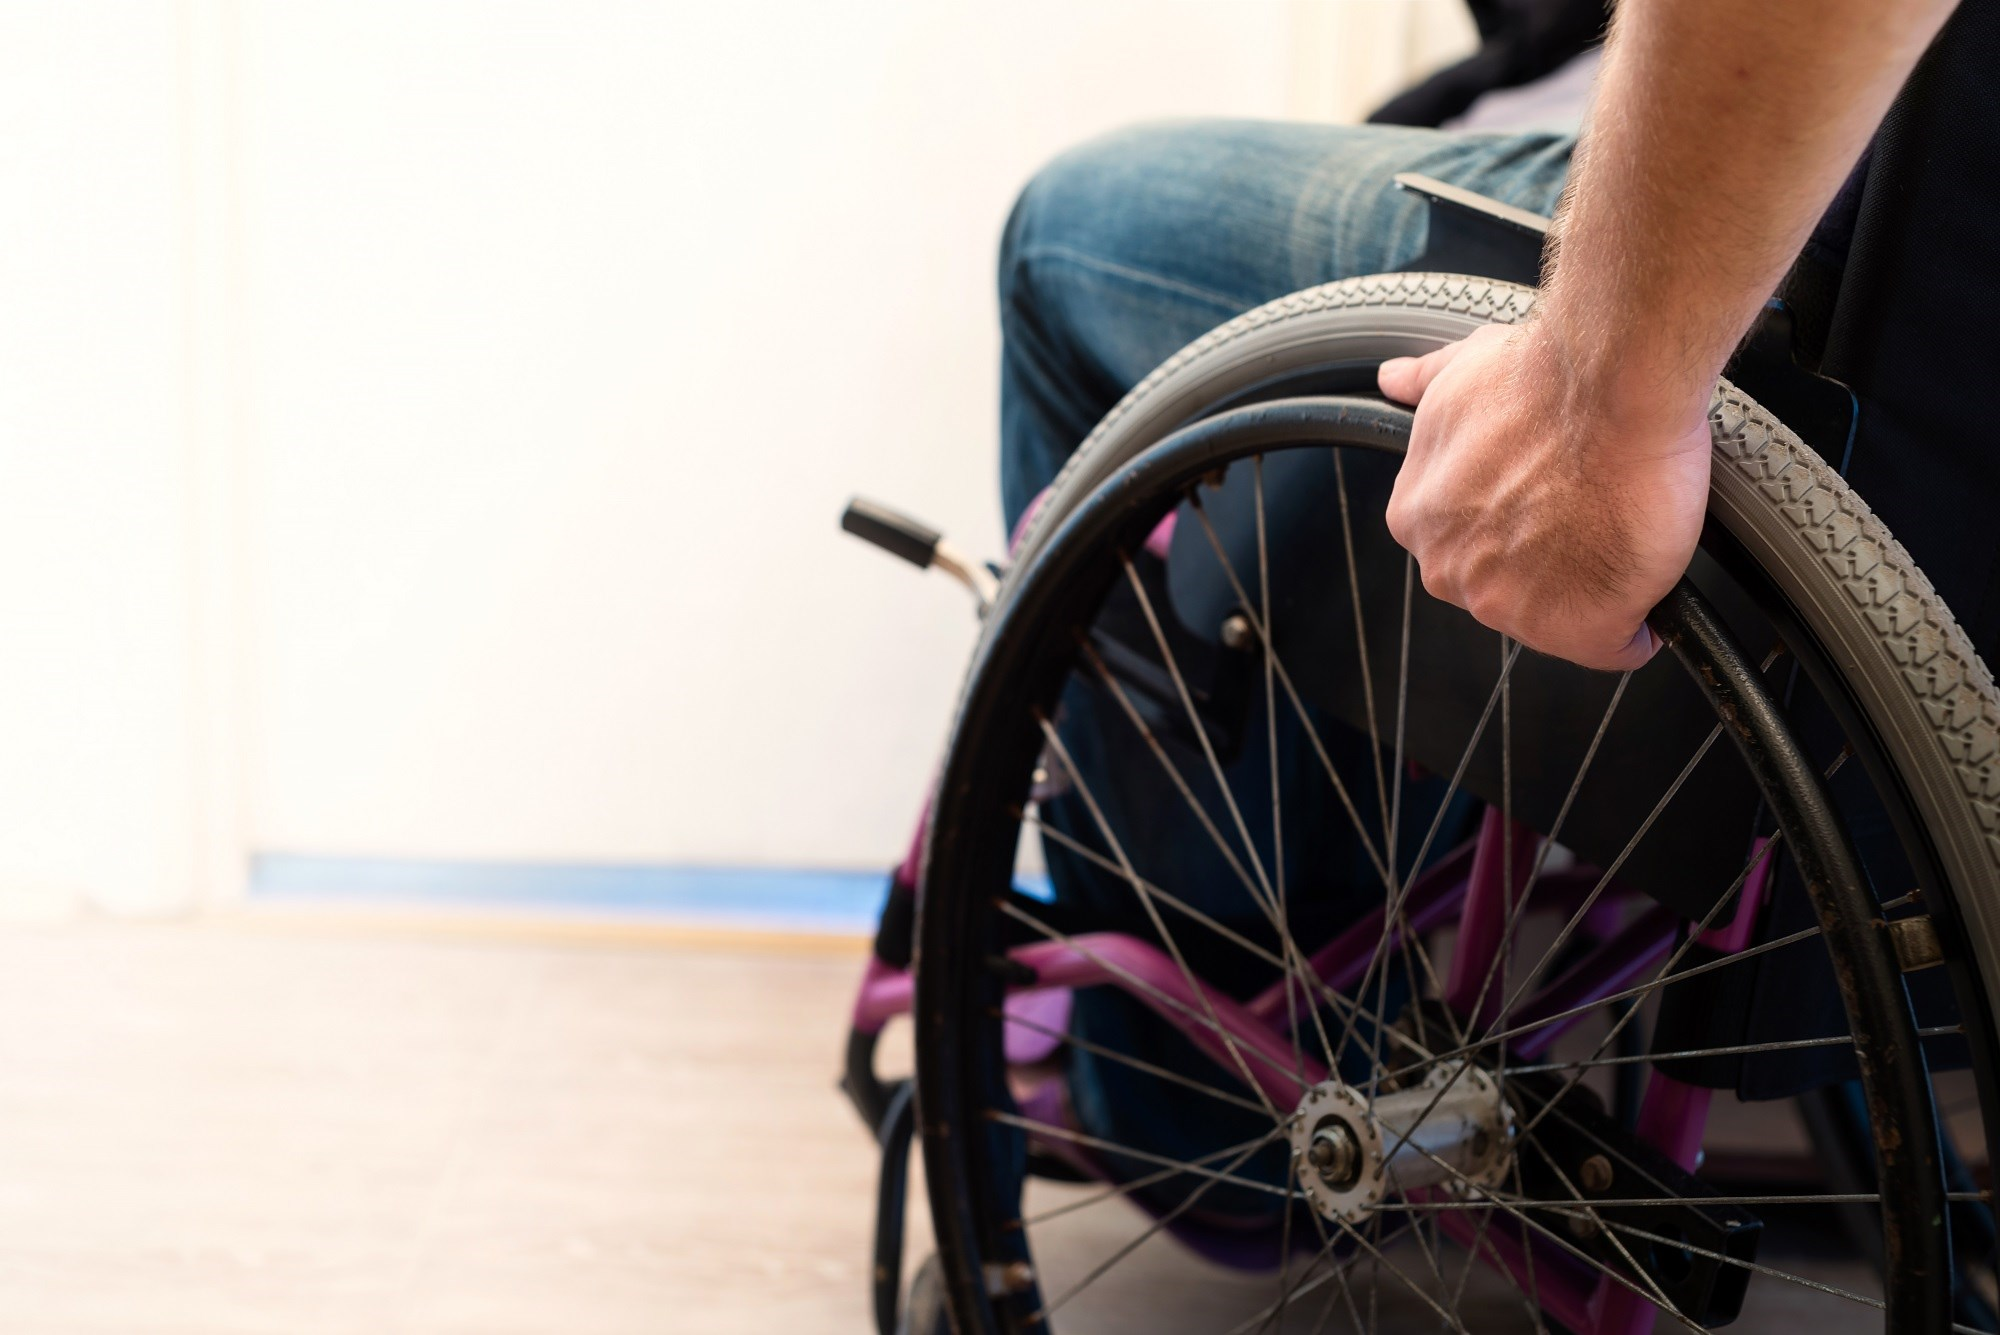 Pain Management After Spinal Cord Injury Should Be Tailored to Pain Level, Subtype